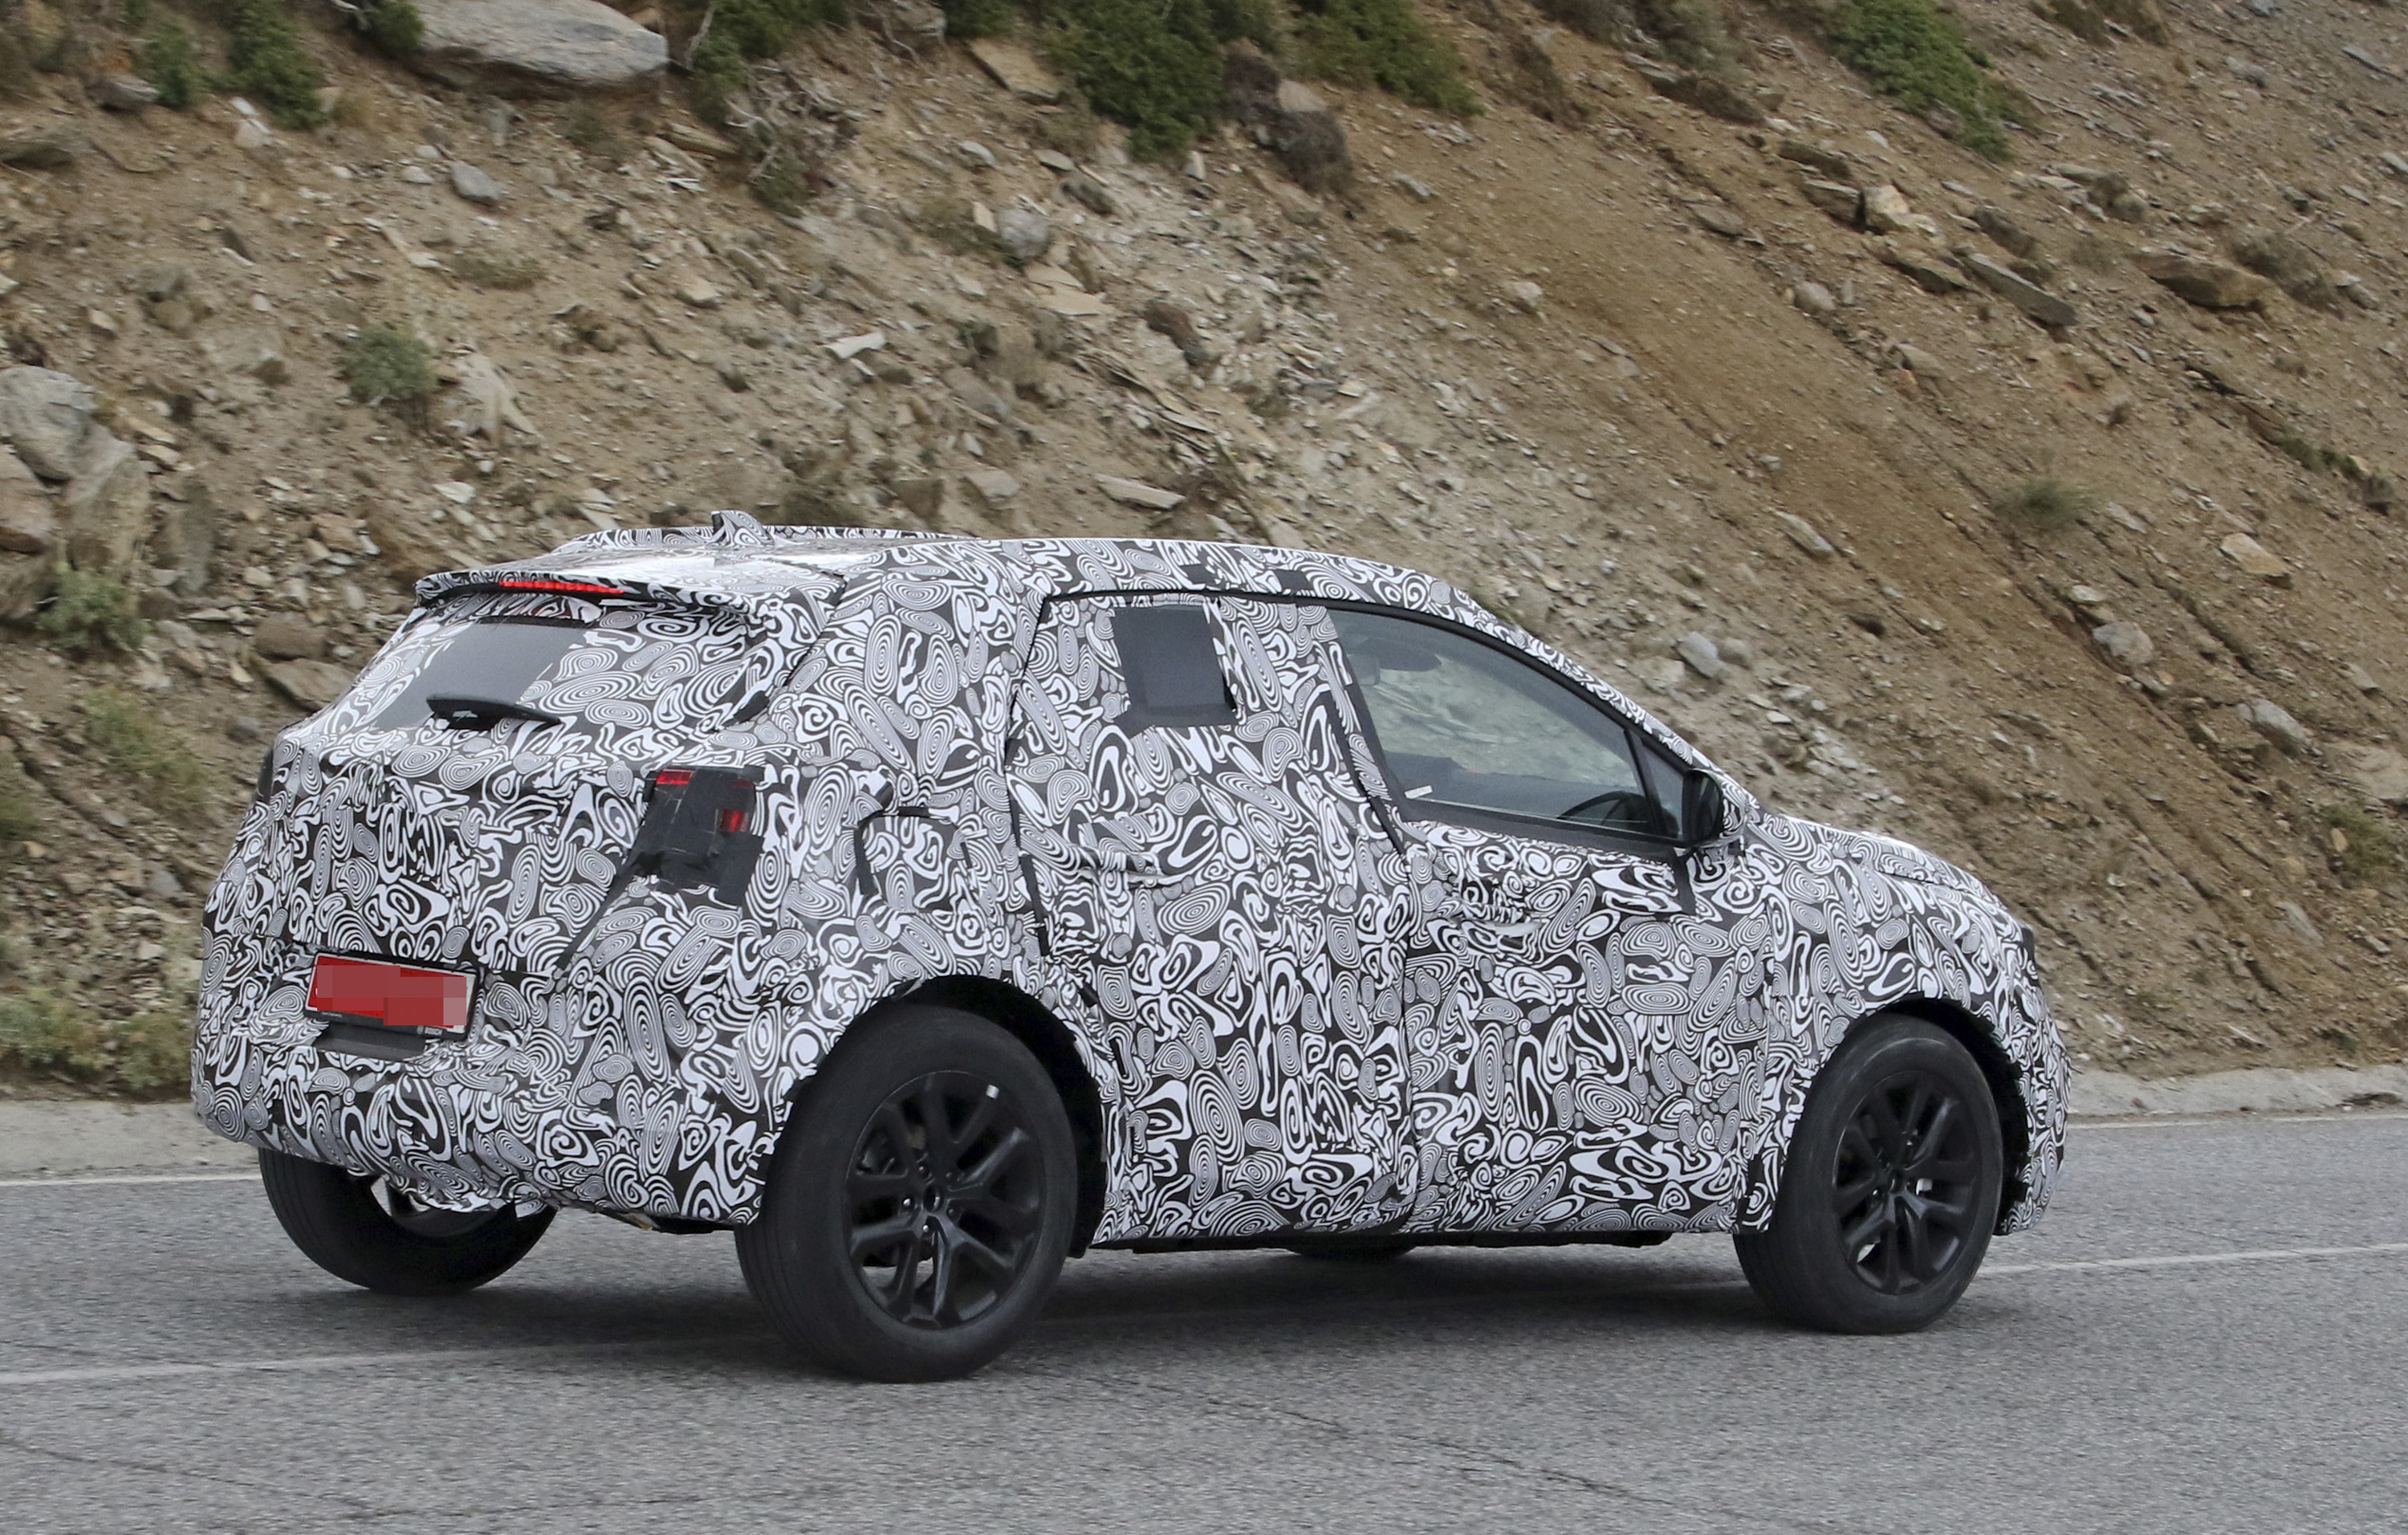 18 All New 2020 Renault Megane SUV Release